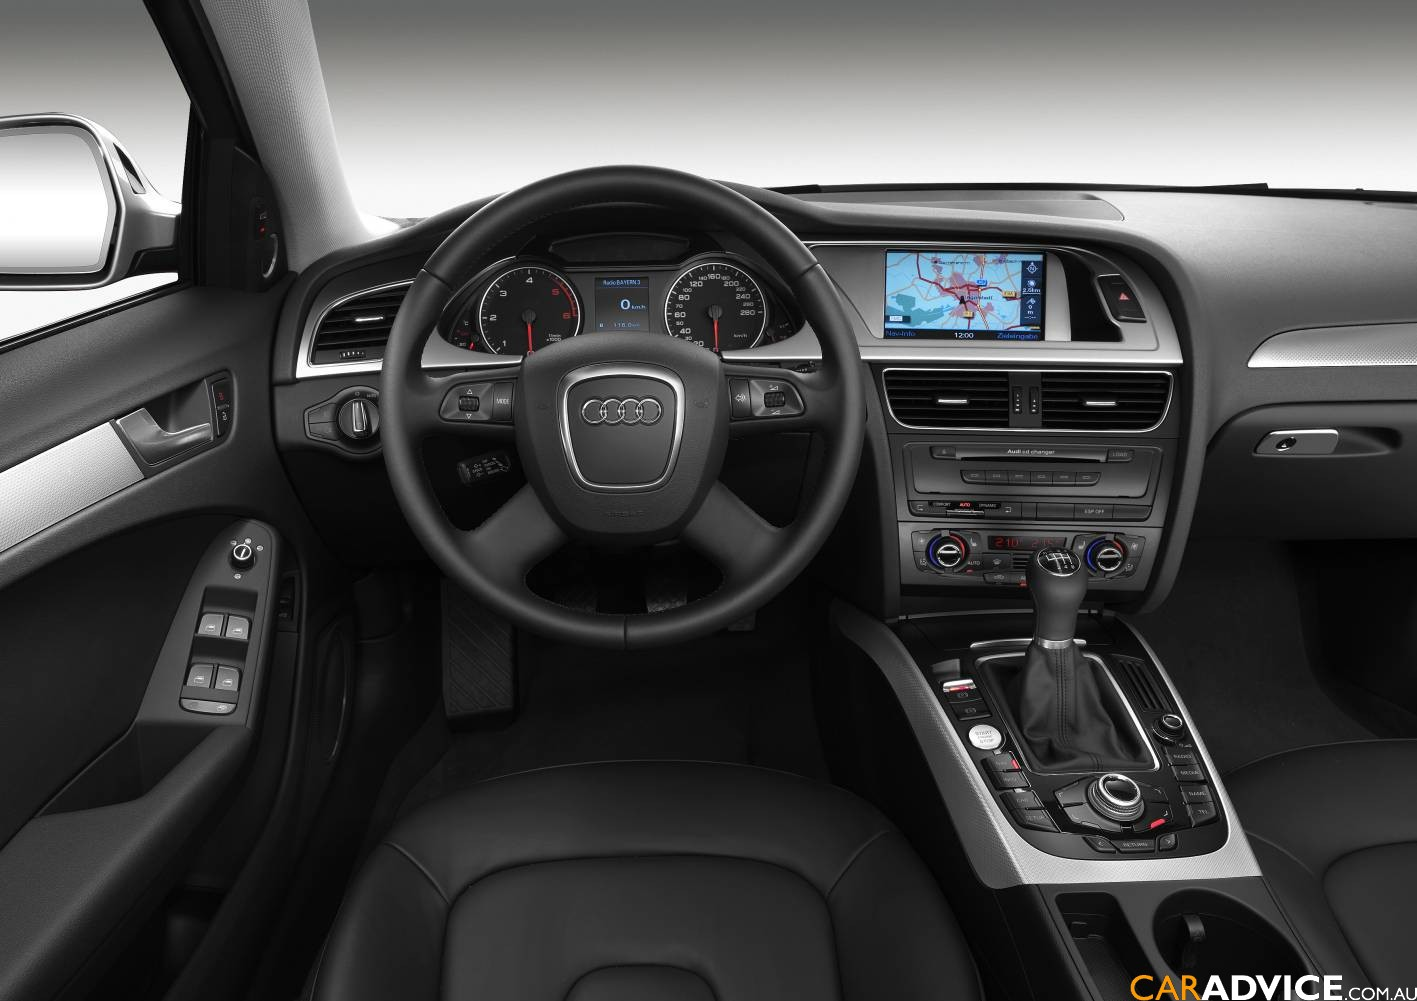 audi a5 1 8 tfsi technical details history photos on better parts ltd. Black Bedroom Furniture Sets. Home Design Ideas